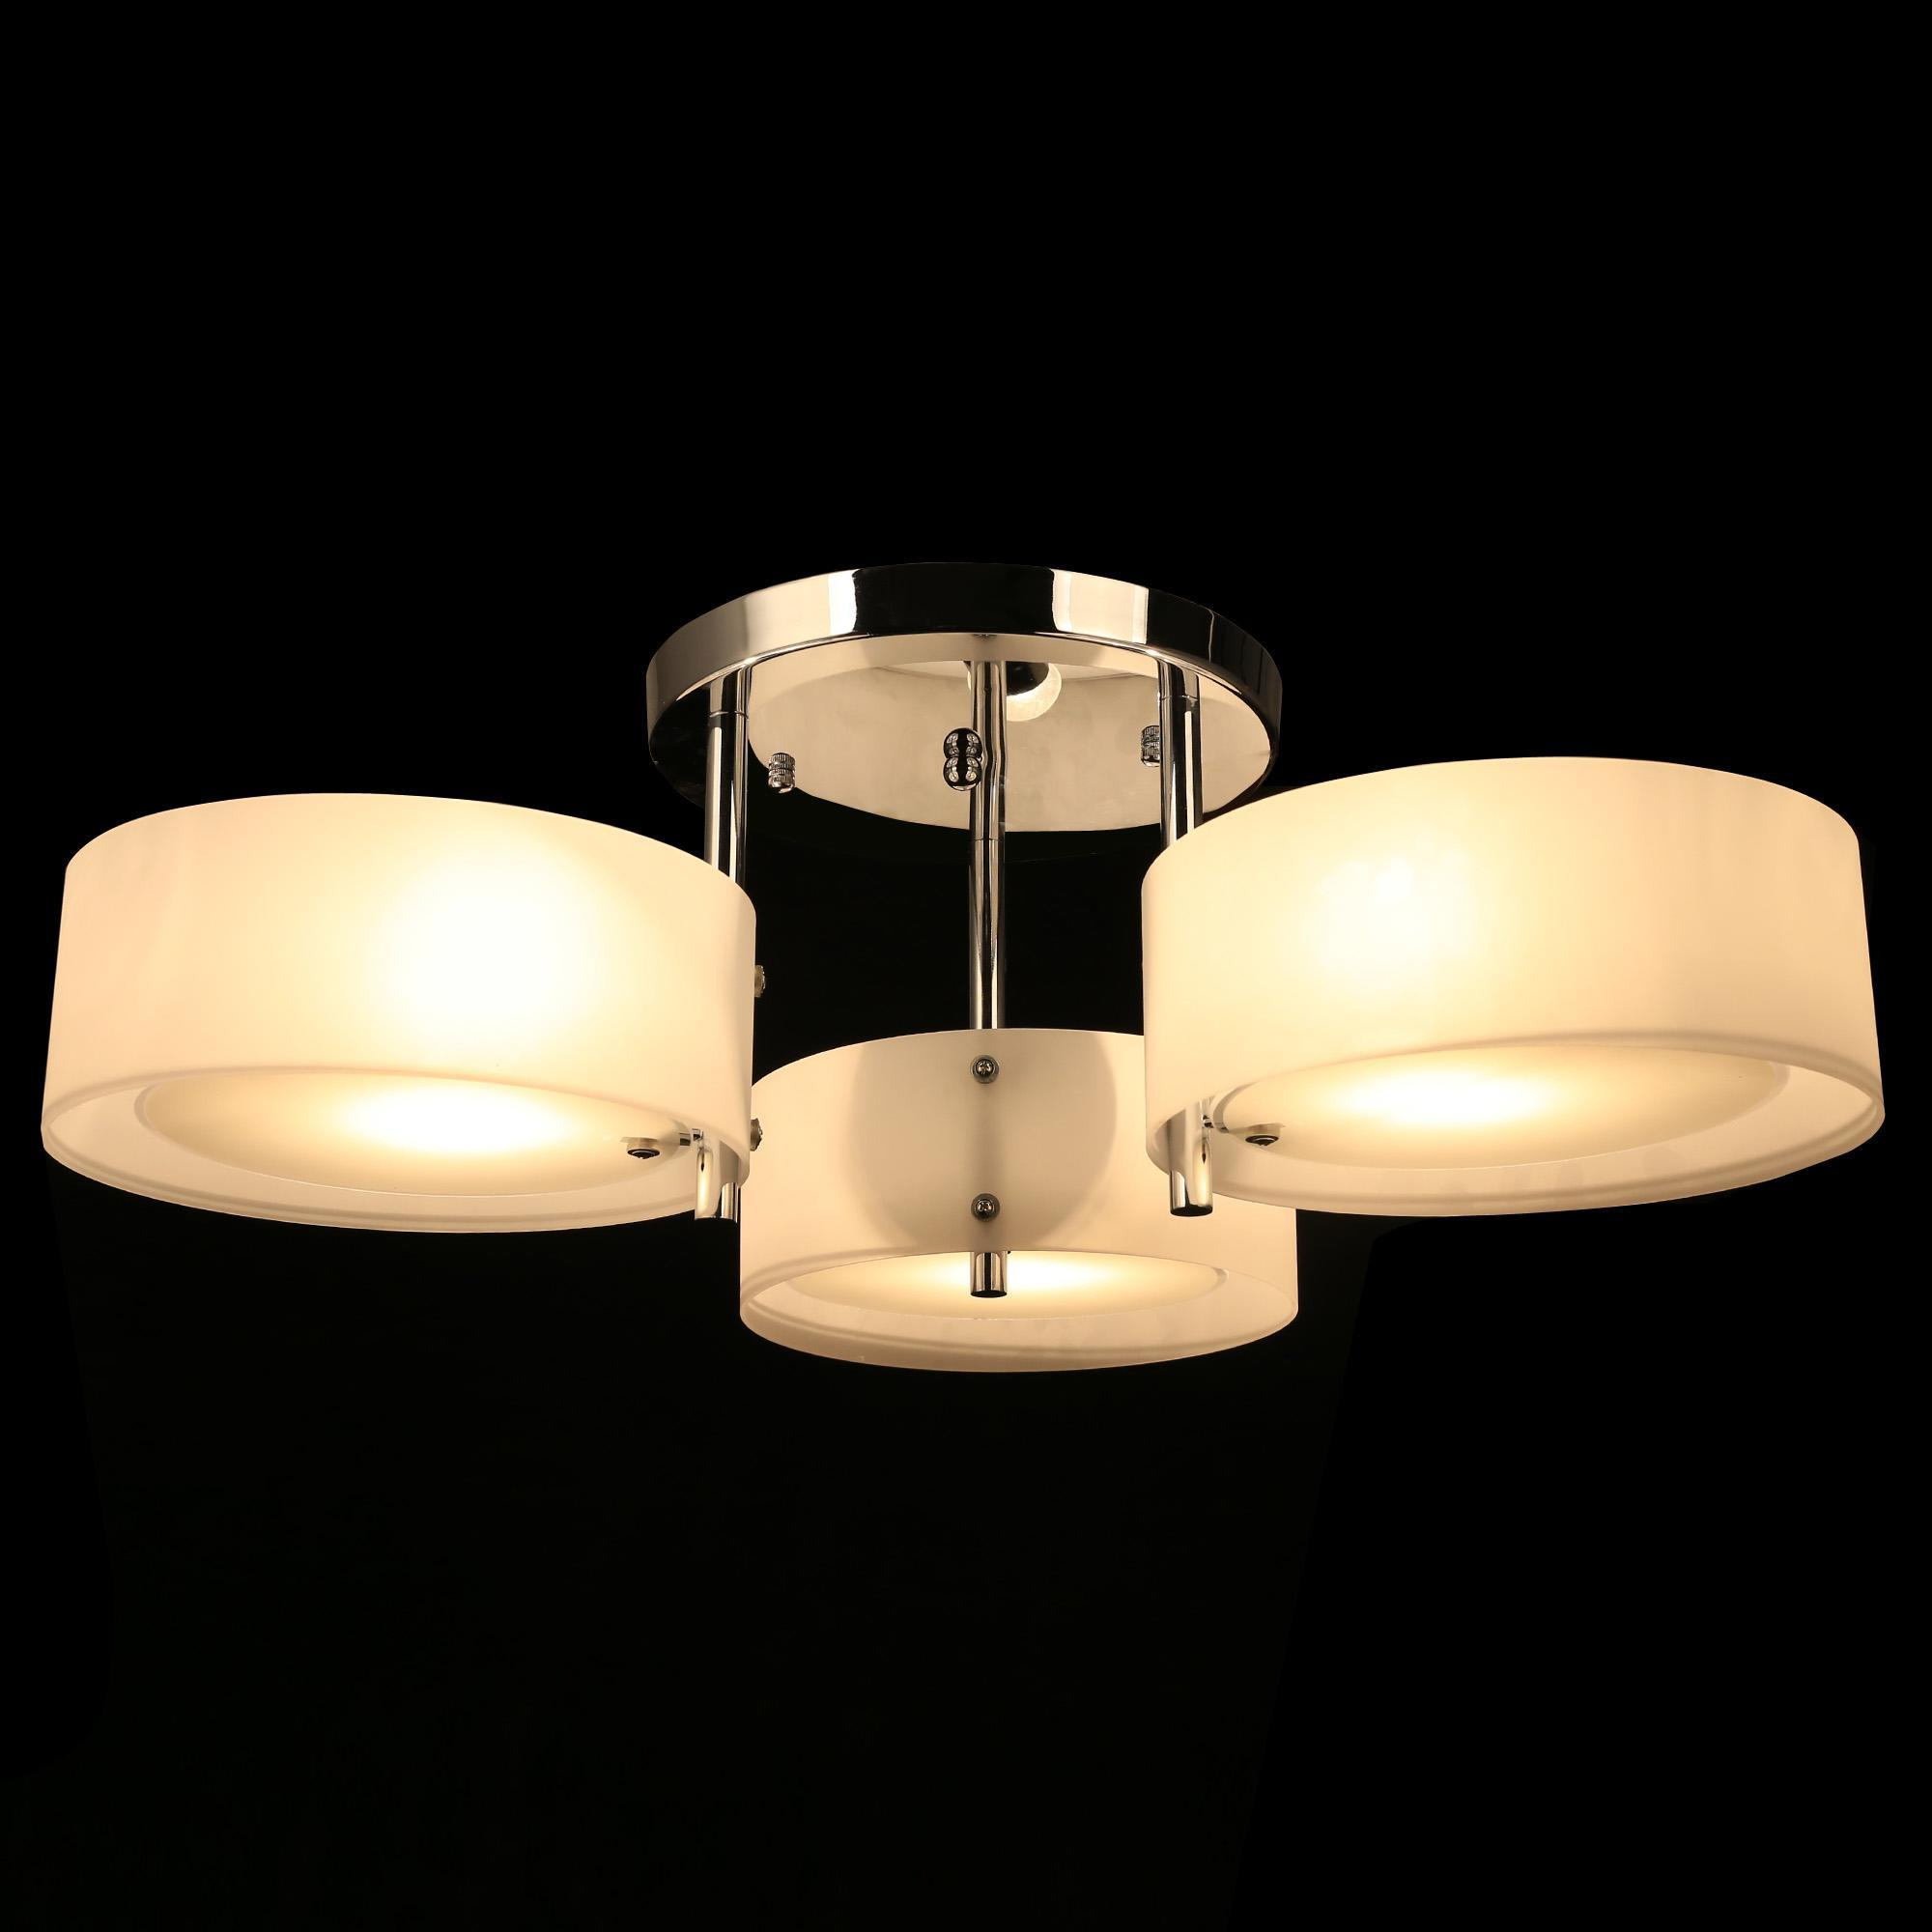 3 x 40W Modern Crystal Light Round Acrylic Chandelier Pendant Lamp Flush Mount Ceiling Light Fixture BYE by